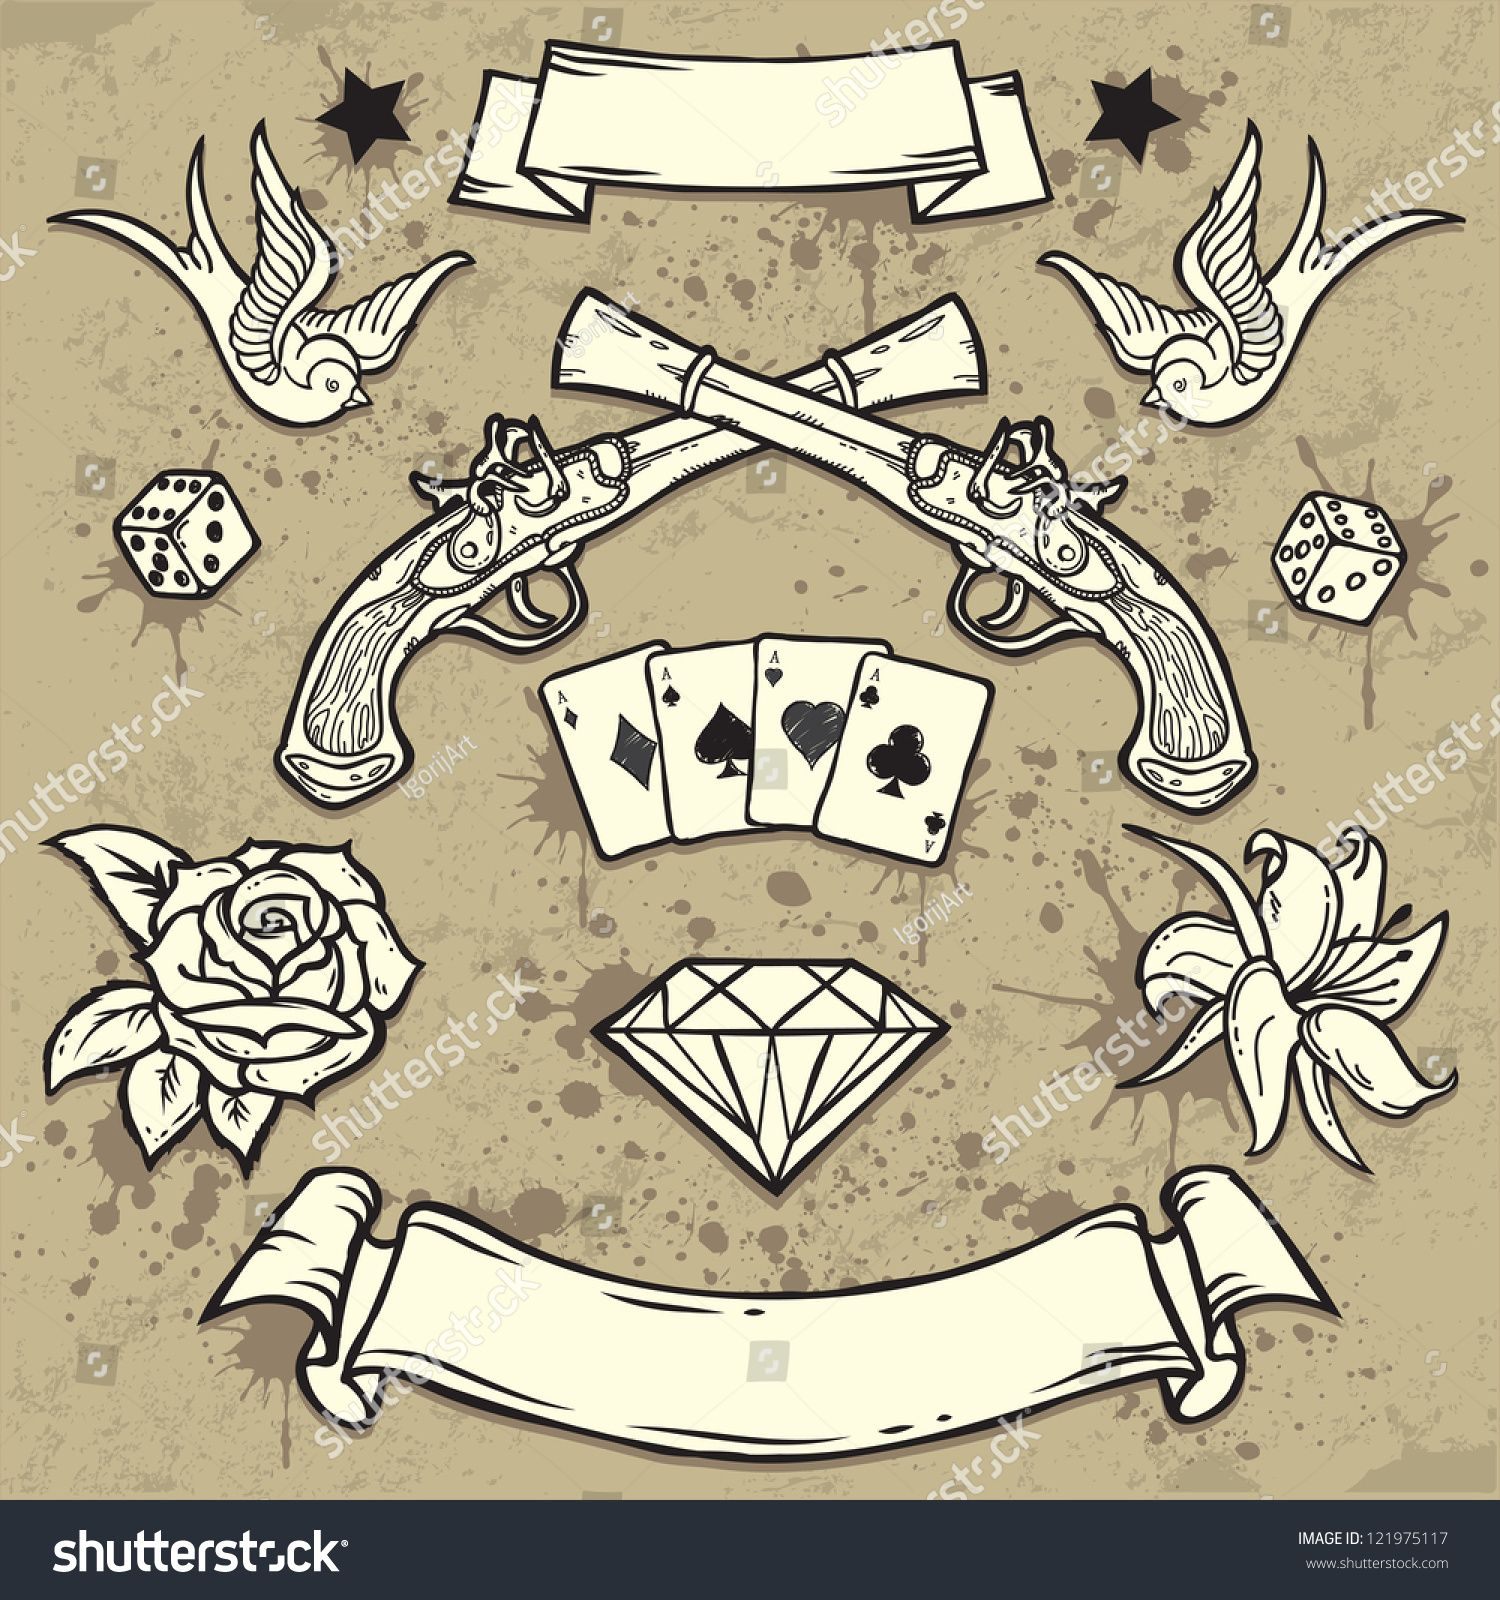 Set of Old School Tattoo Elements.Tattooart design. New